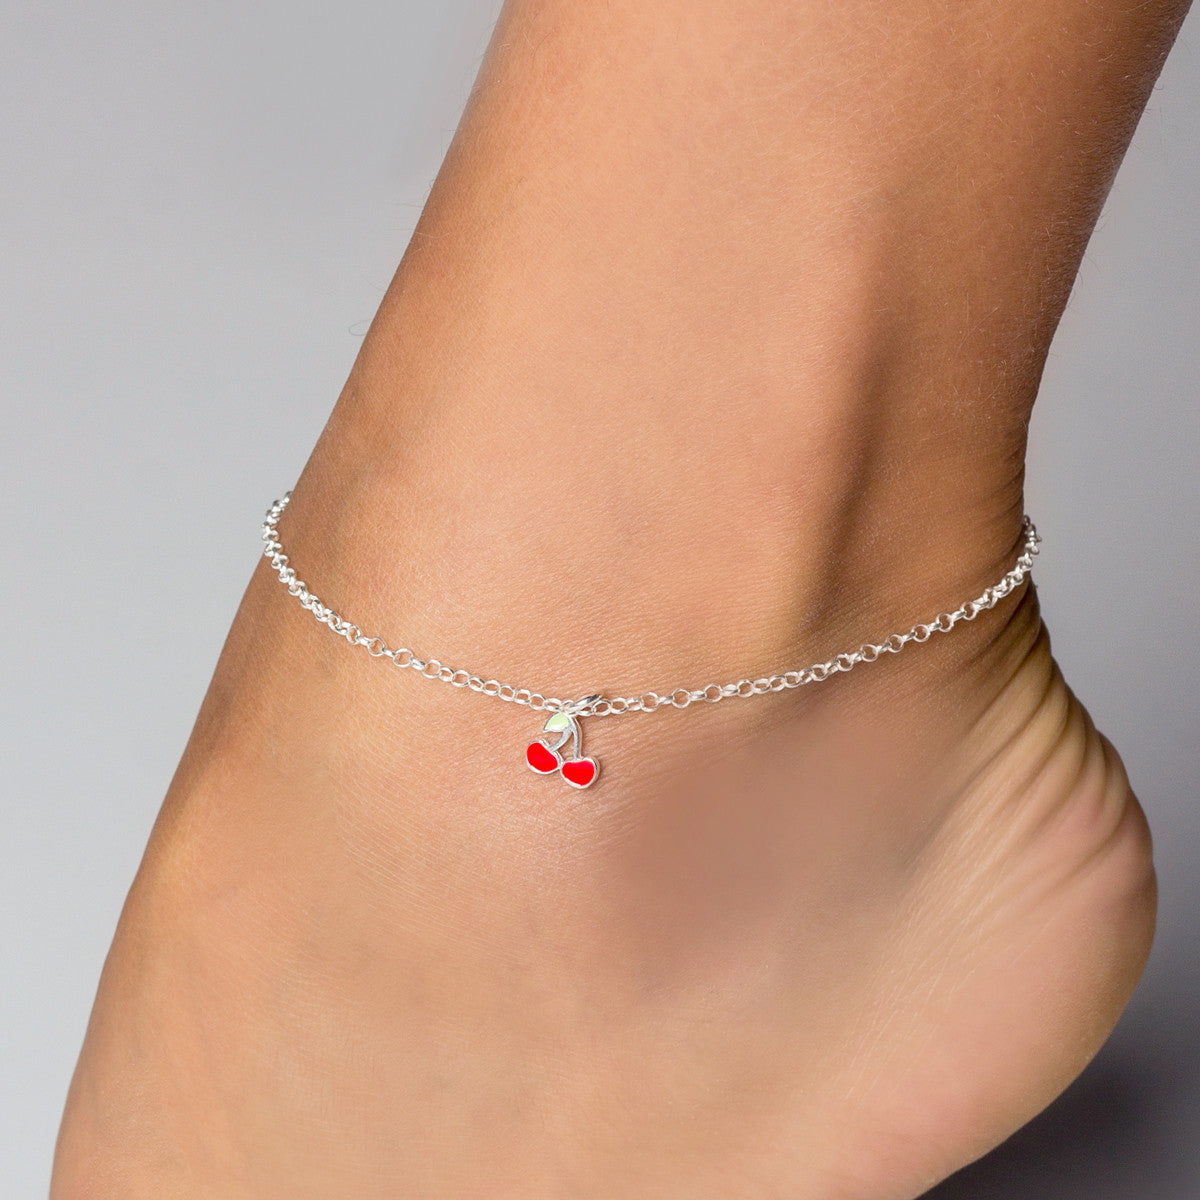 product uk silver jewellerybox sterling anklet har co wishbone inch inches